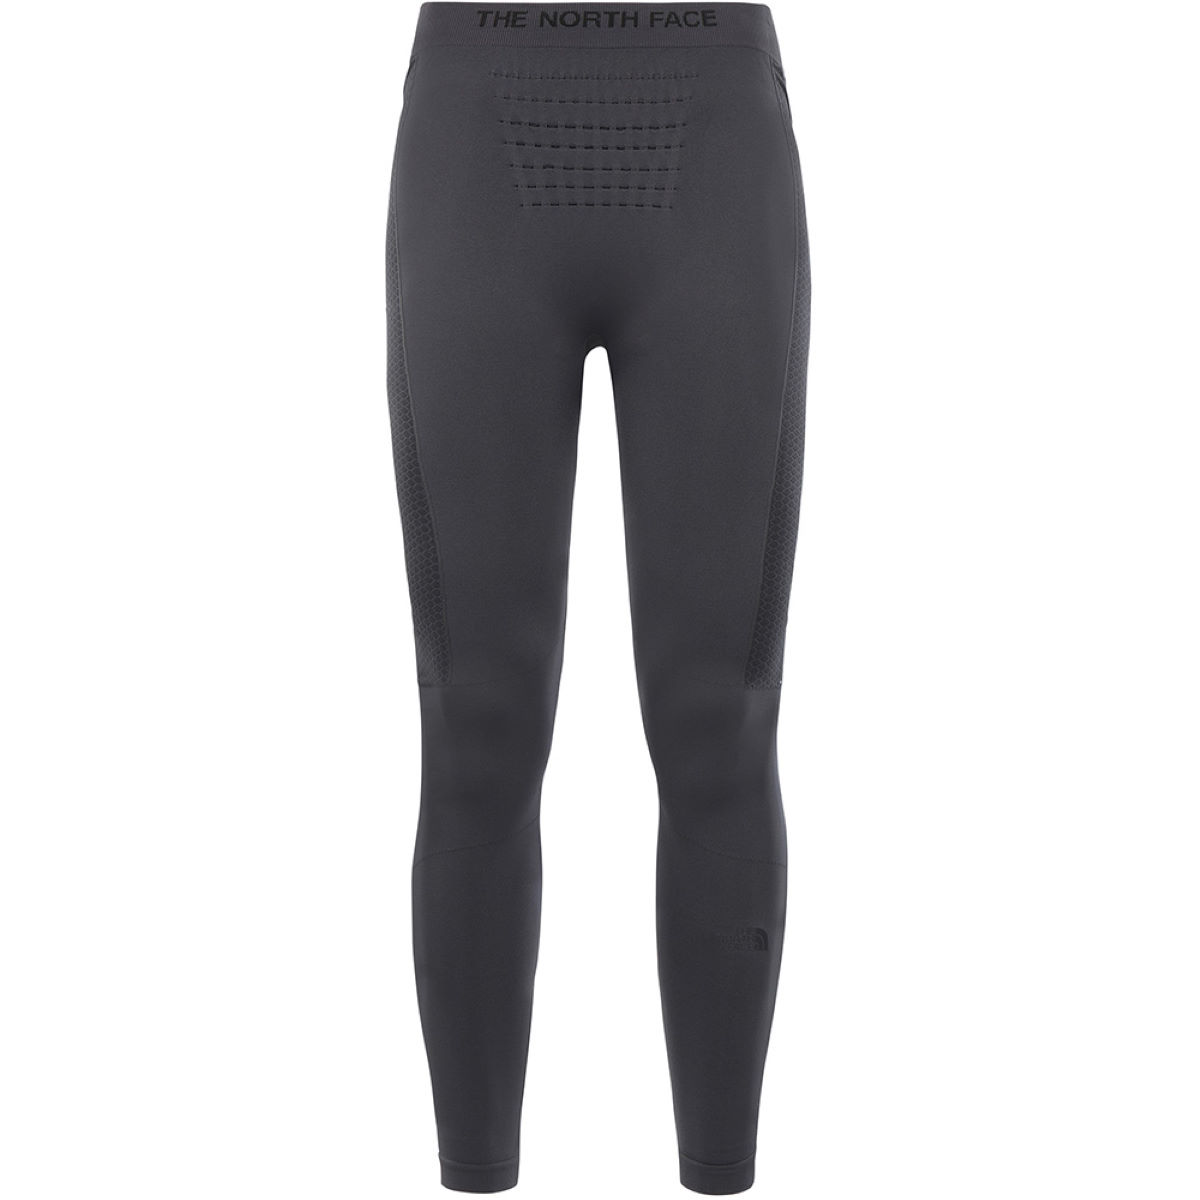 The North Face Womens Sport Legging Baselayer - Xs/s  Tights